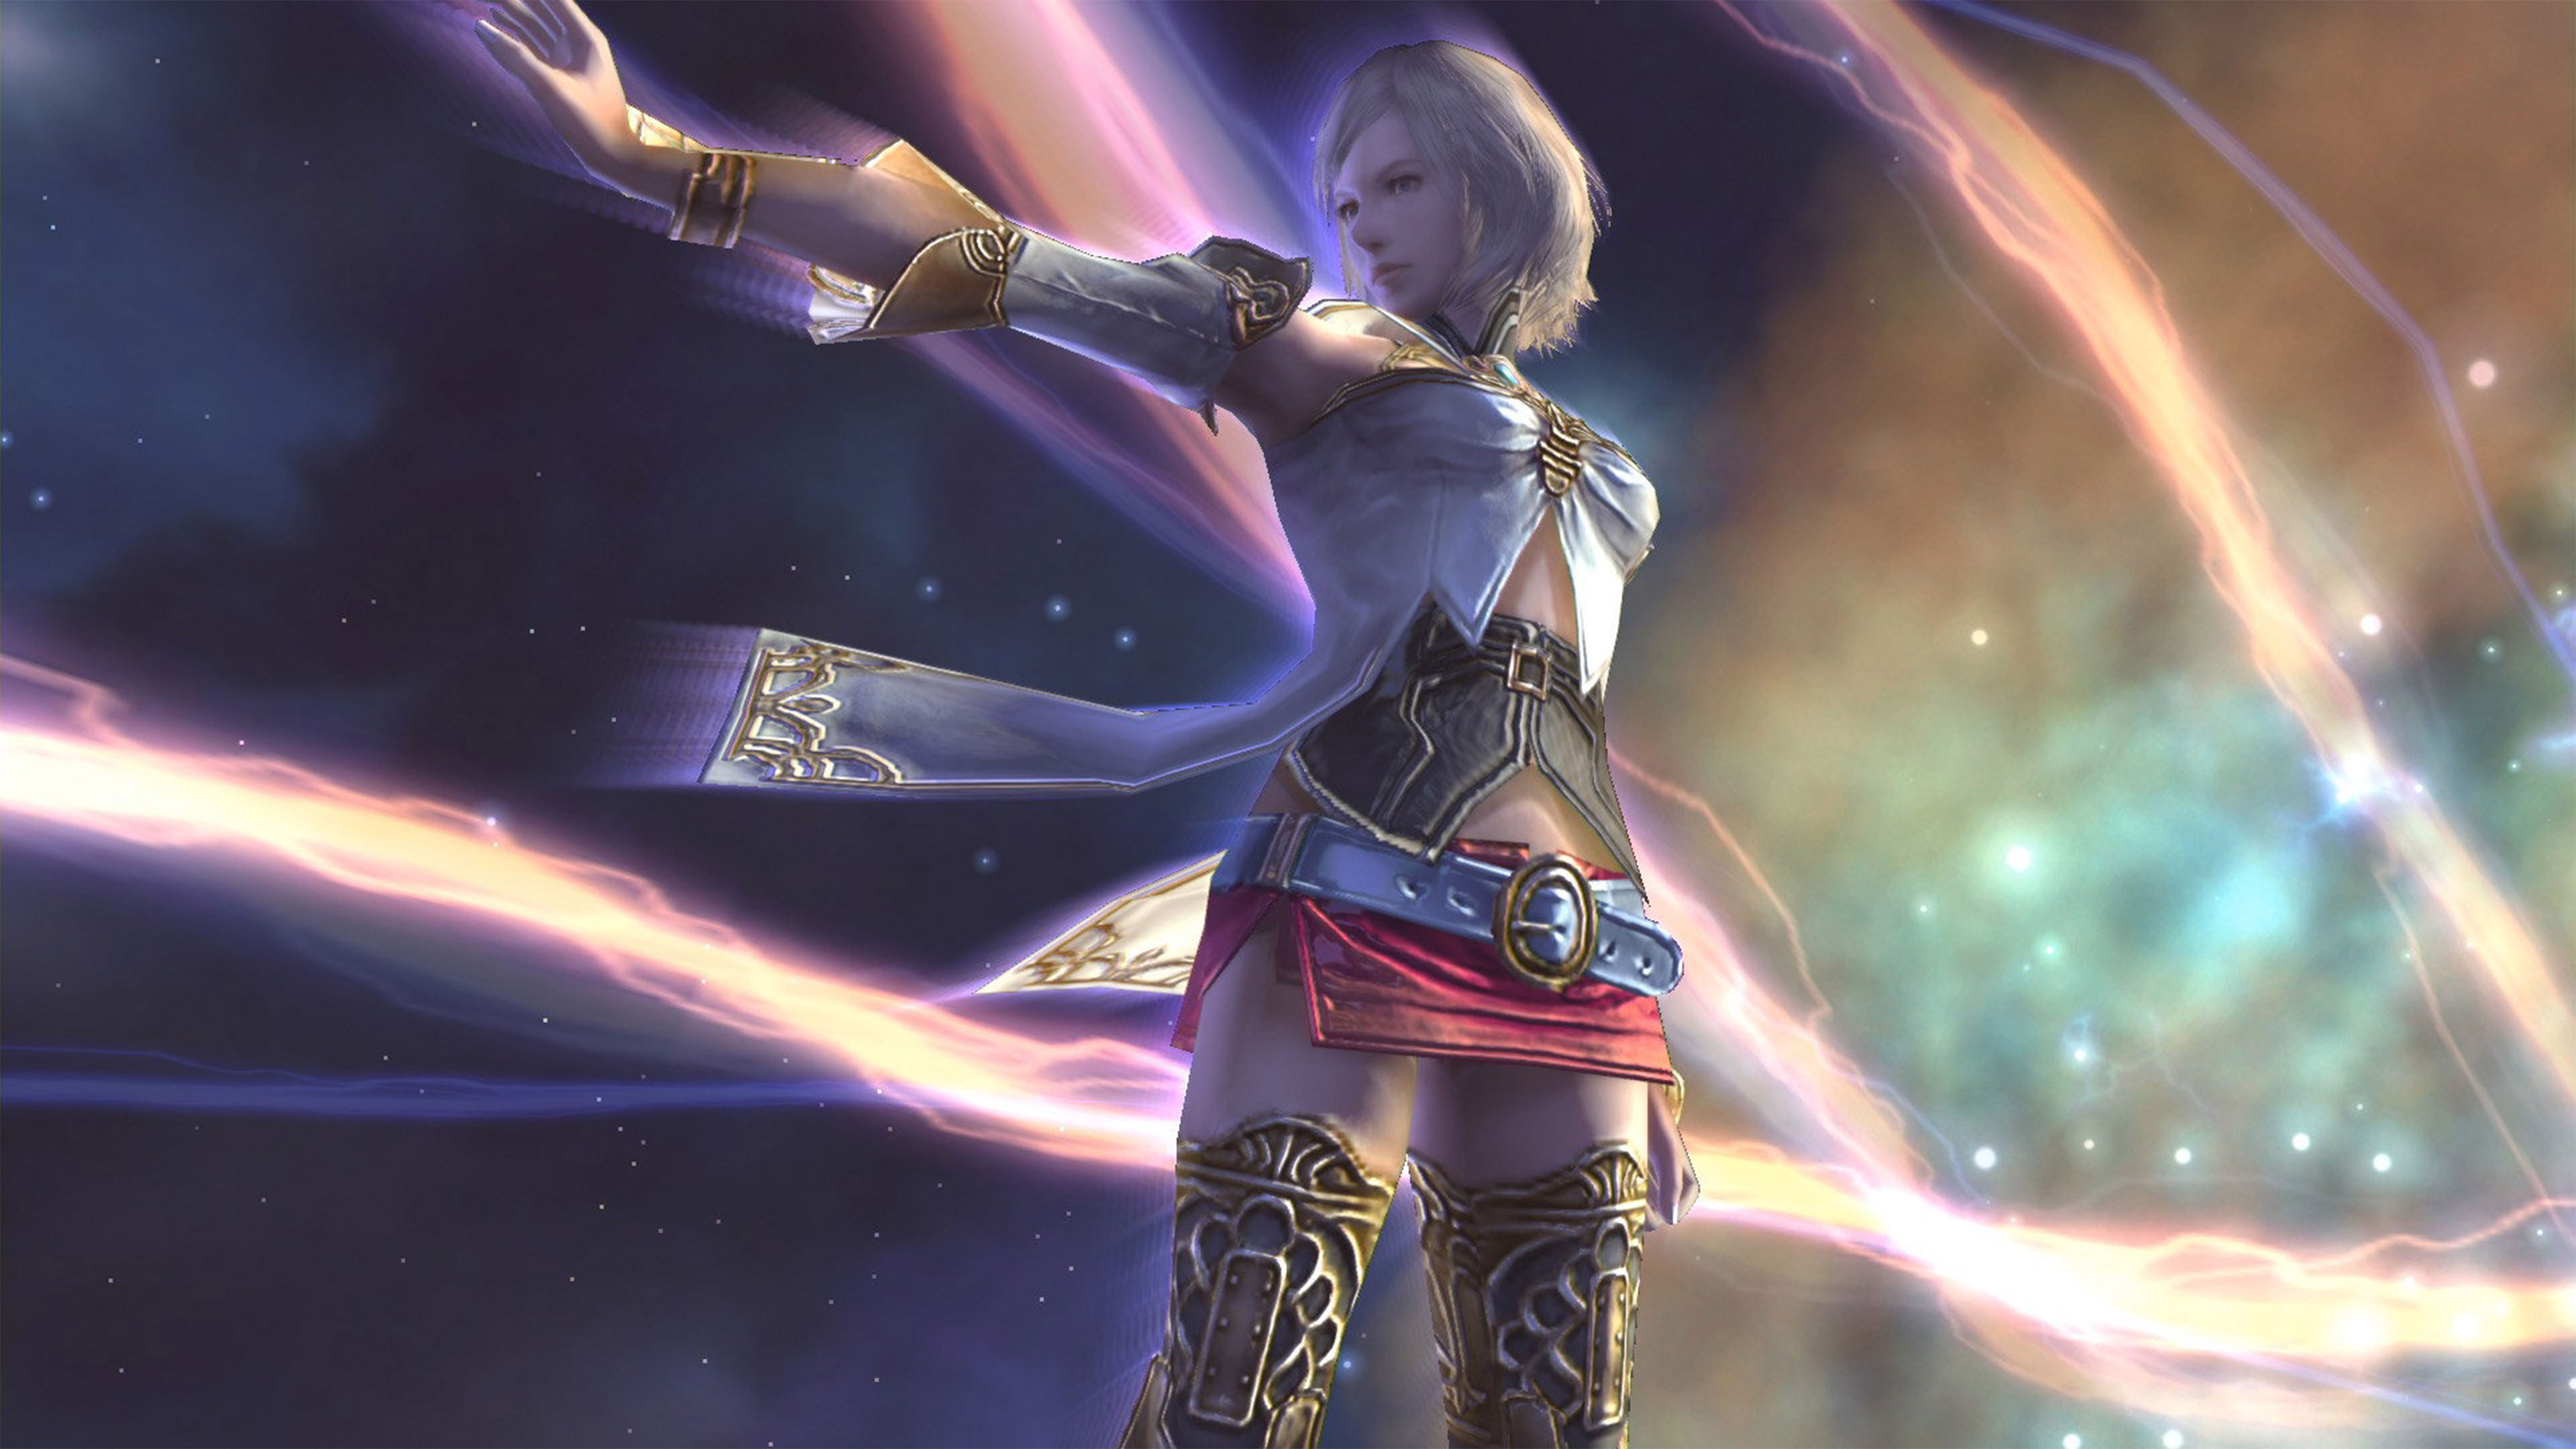 final fantasy xii the zodiac age wallpapers in ultra hd | 4k